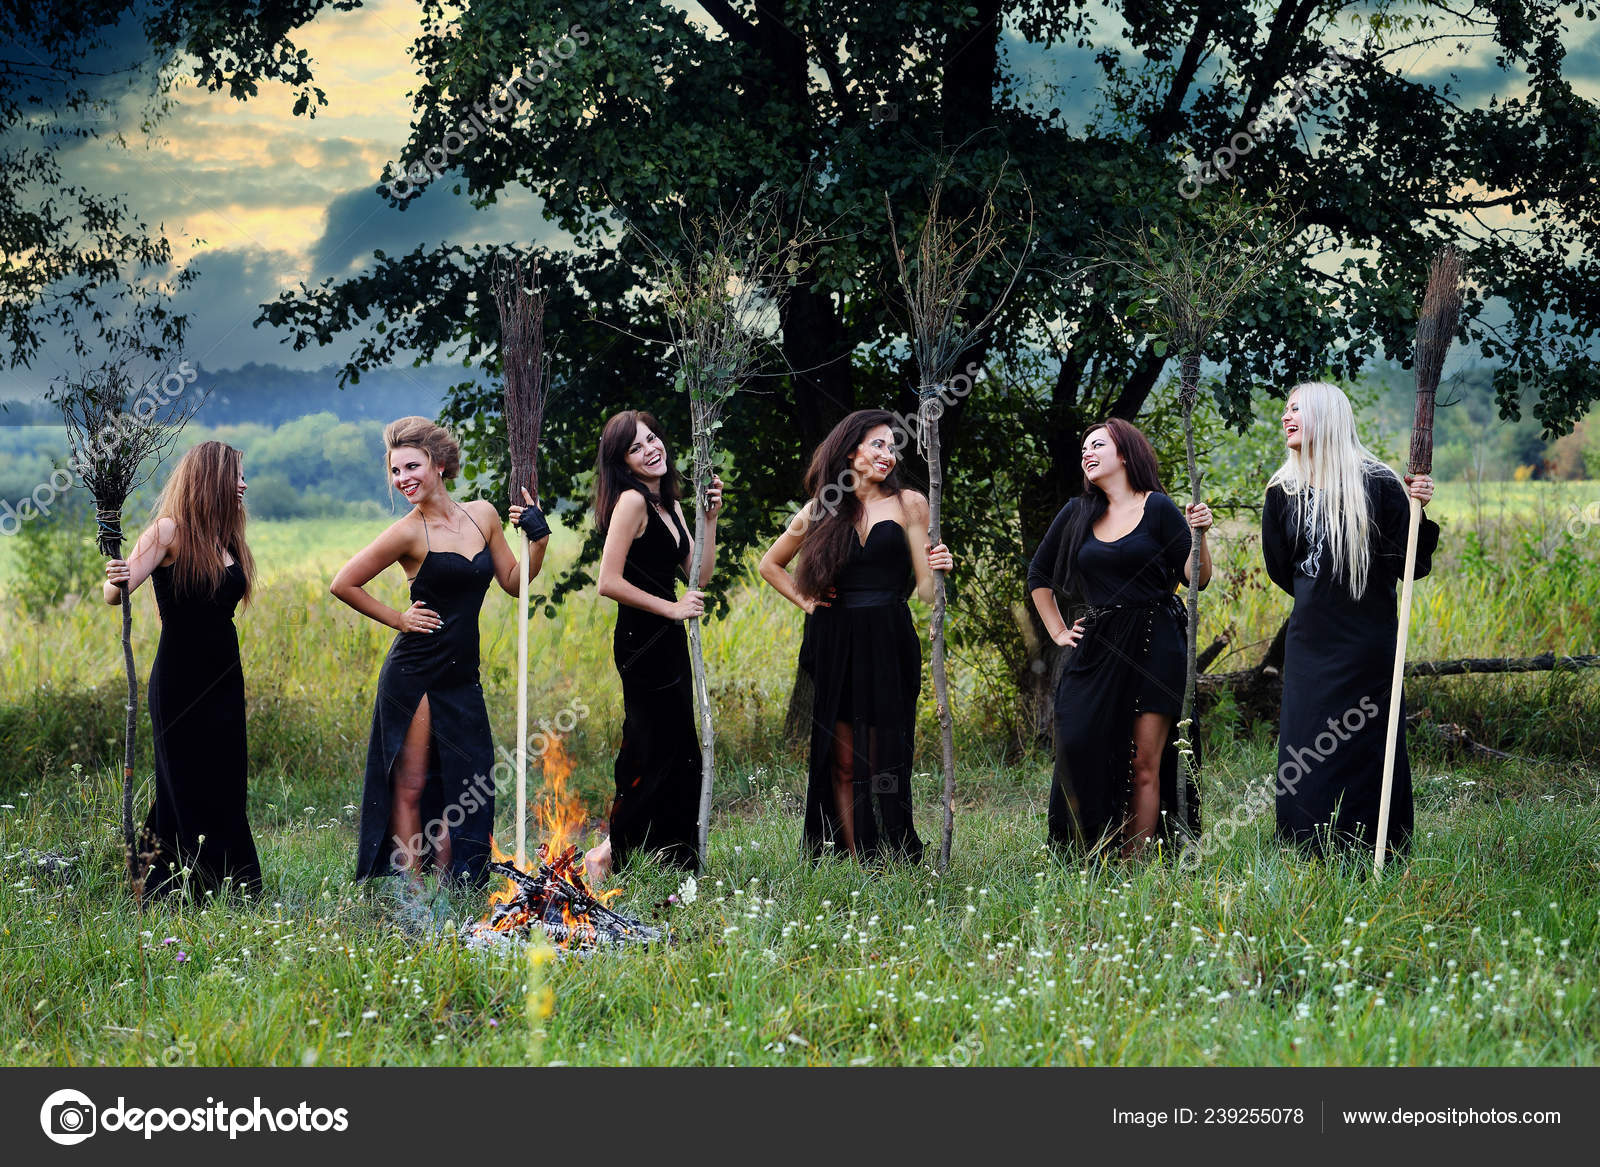 Witches Brooms Campfire Meadow — Stock Photo © mallivan #239255078